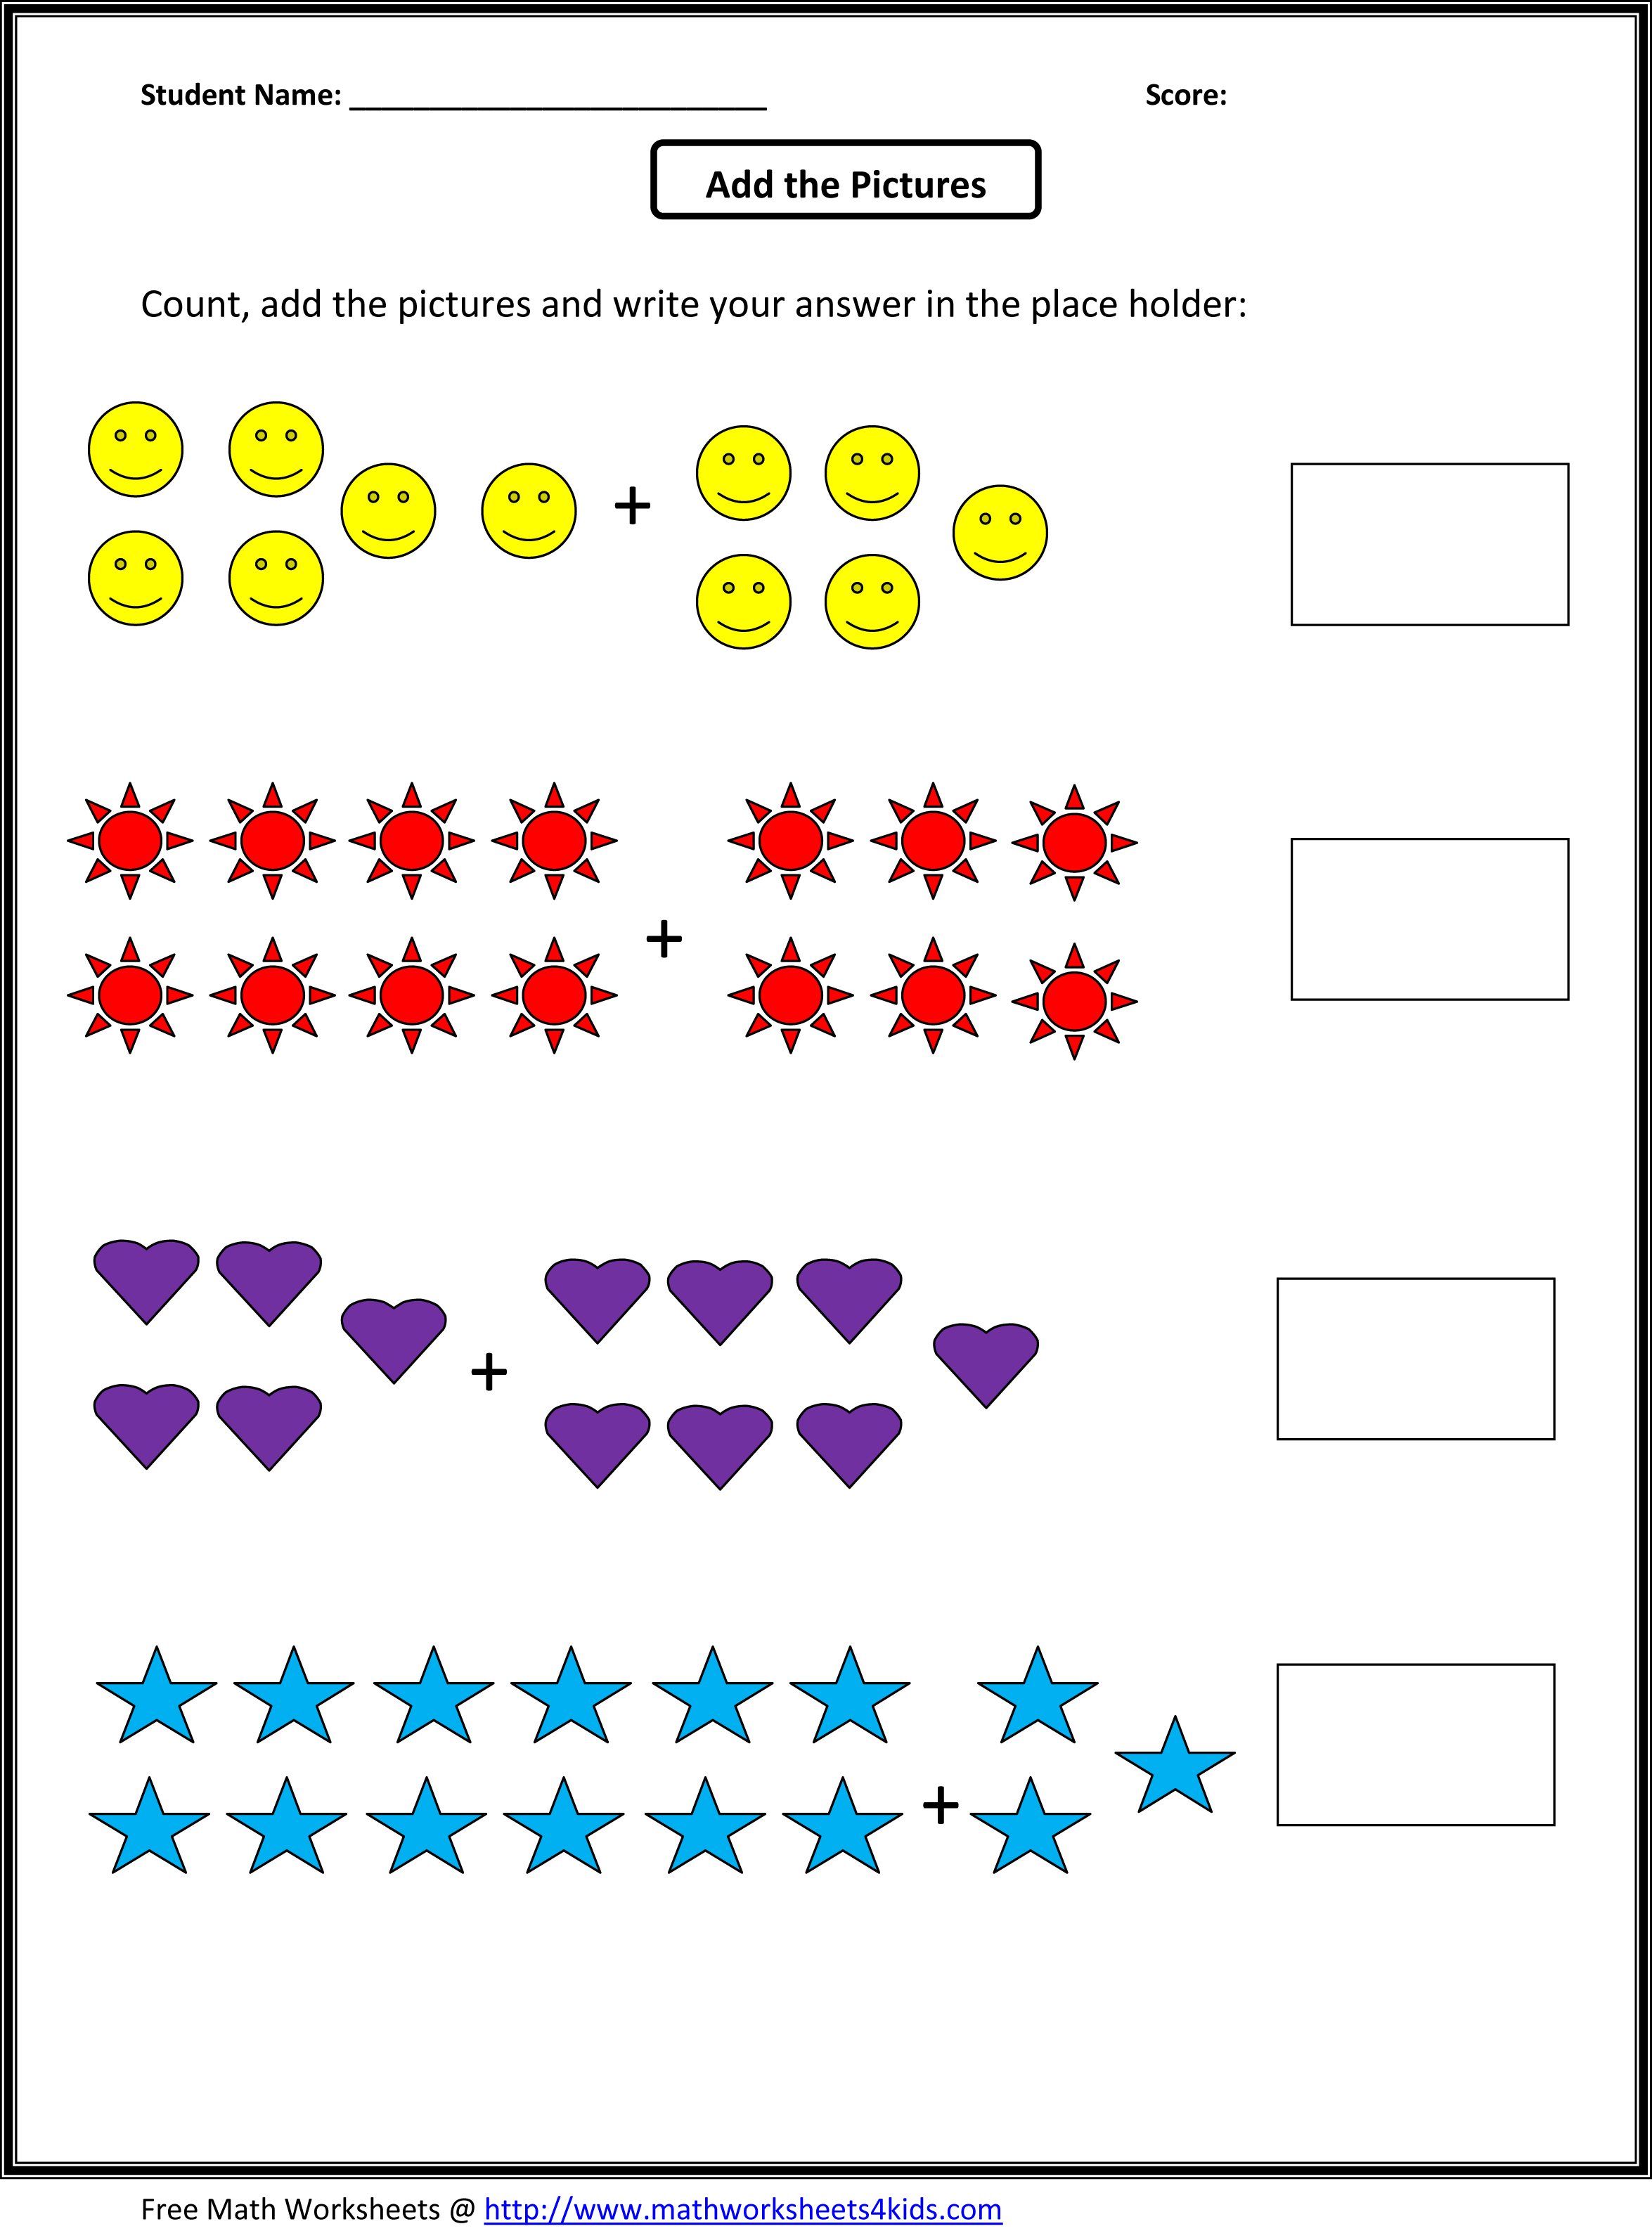 Weirdmailus  Inspiring Grade  Maths Worksheet  Reocurent With Lovable Math Worksheets For St Grade Free  Reocurent With Appealing Worksheets For Kids To Print Also Addition Worksheets Year  In Addition Ukg Maths Worksheets And Balanced Diet Worksheet As Well As Animal Dot To Dot Worksheets Additionally Telling The Time Worksheets For Kids From Reocurentcom With Weirdmailus  Lovable Grade  Maths Worksheet  Reocurent With Appealing Math Worksheets For St Grade Free  Reocurent And Inspiring Worksheets For Kids To Print Also Addition Worksheets Year  In Addition Ukg Maths Worksheets From Reocurentcom